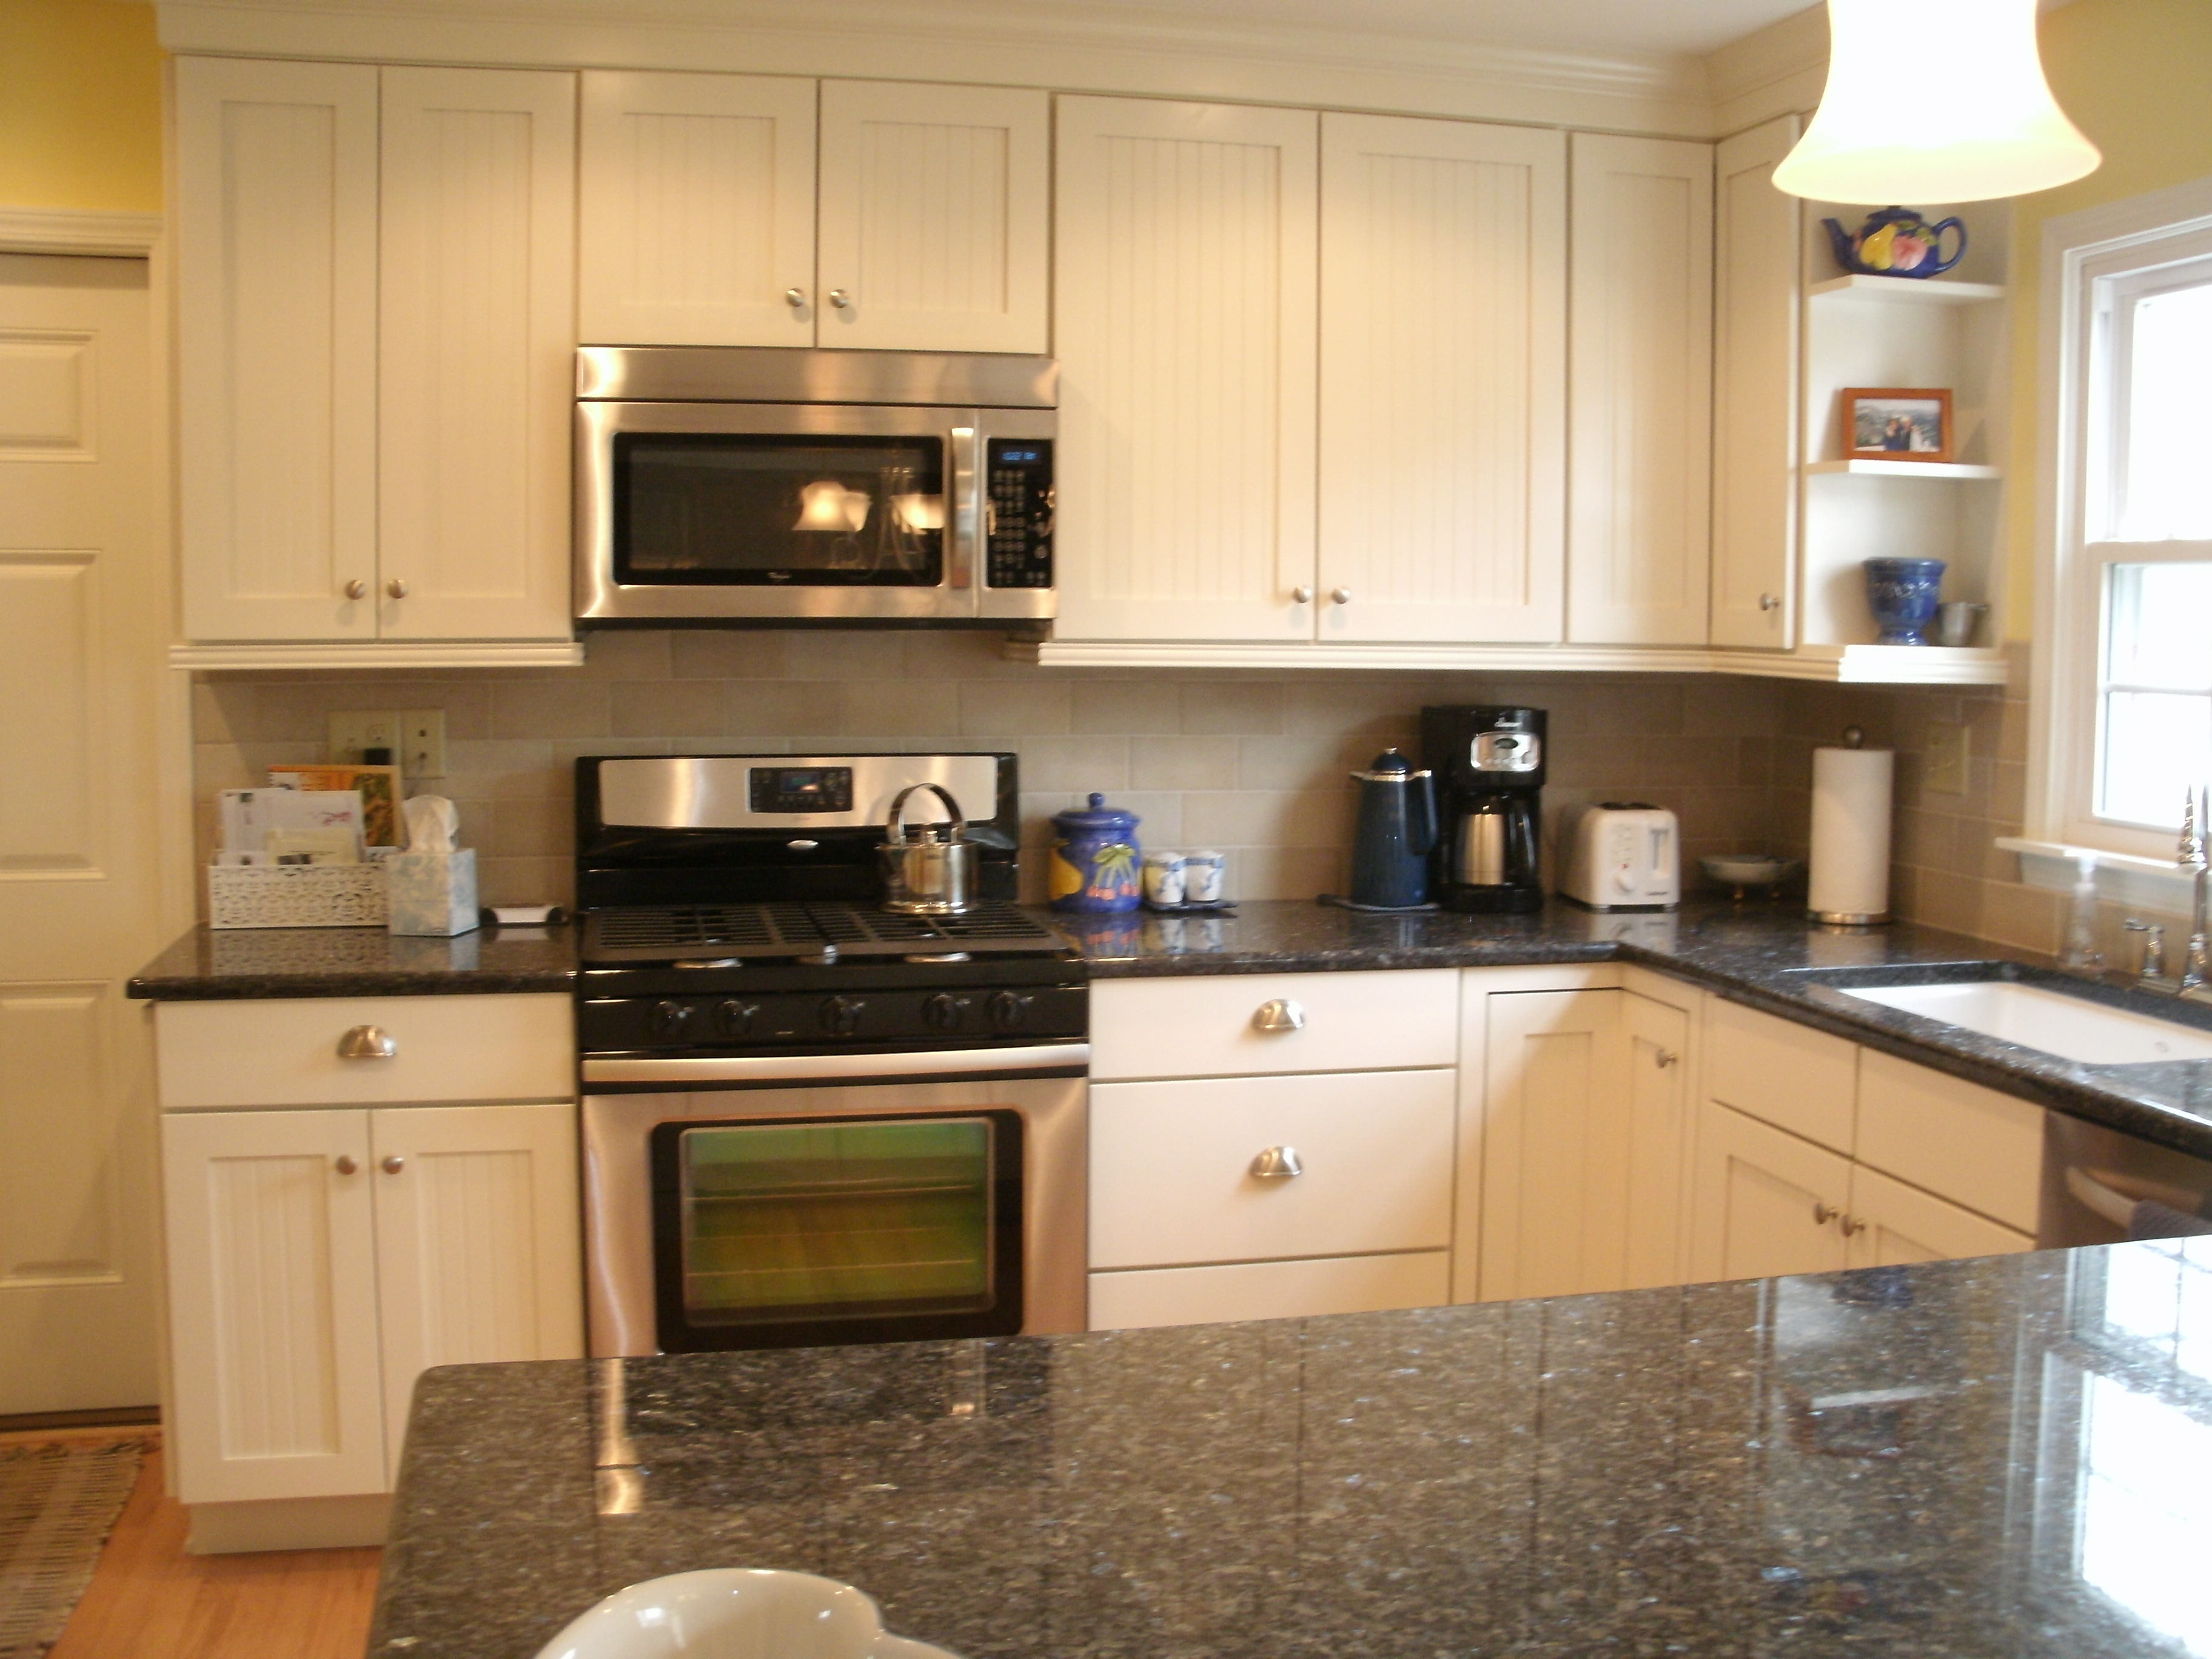 Kitchen Remodeling Ideas at home in Wheaton